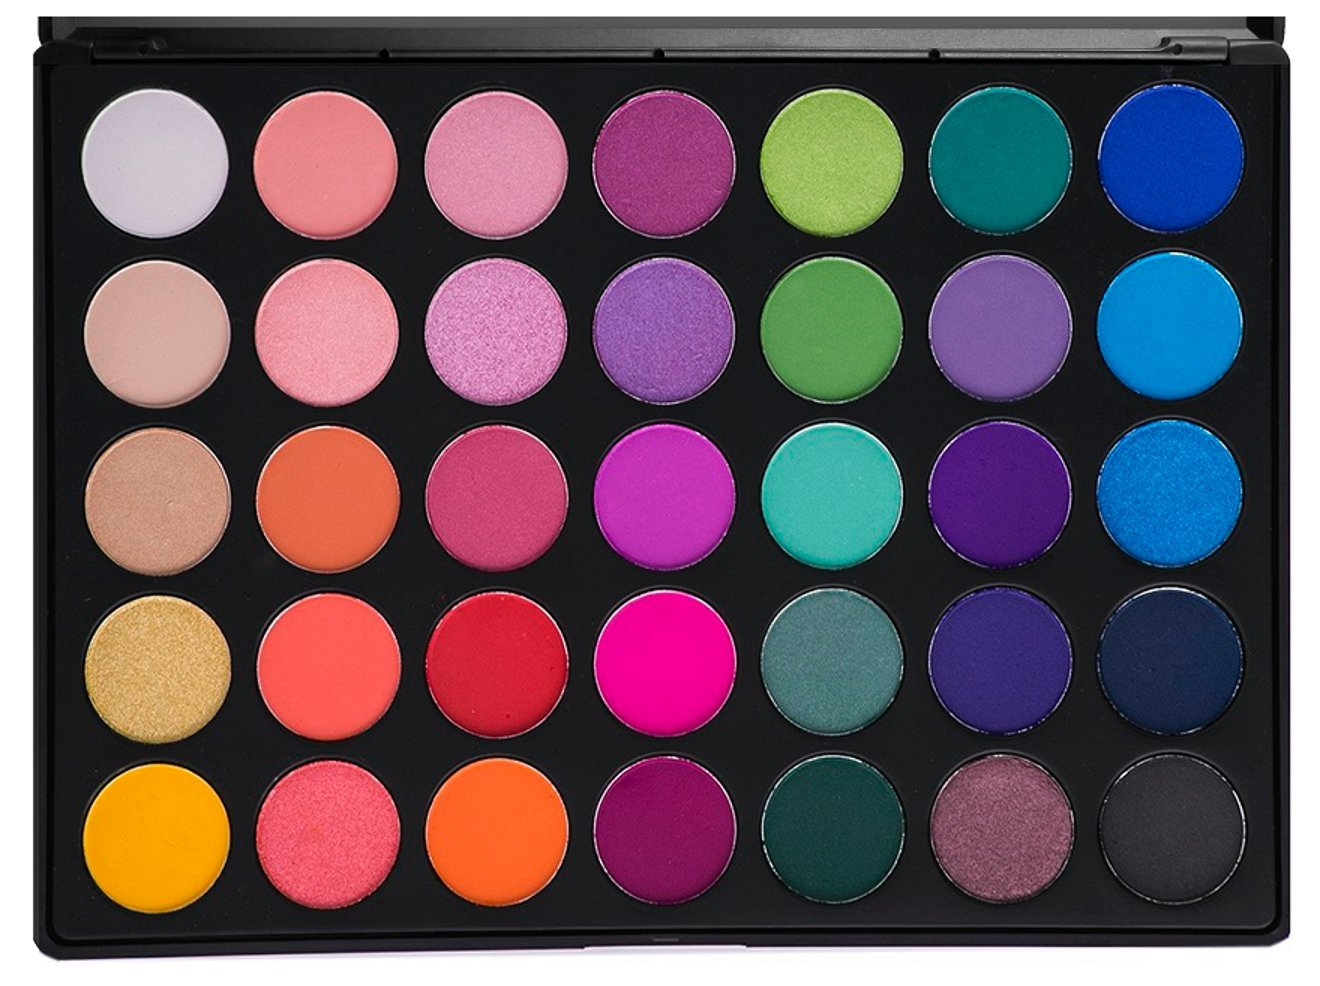 Morphe Pro 35 Color Eyeshadow Makeup Palette - GLAM (High Pigmented) 35B Morphe Brushes